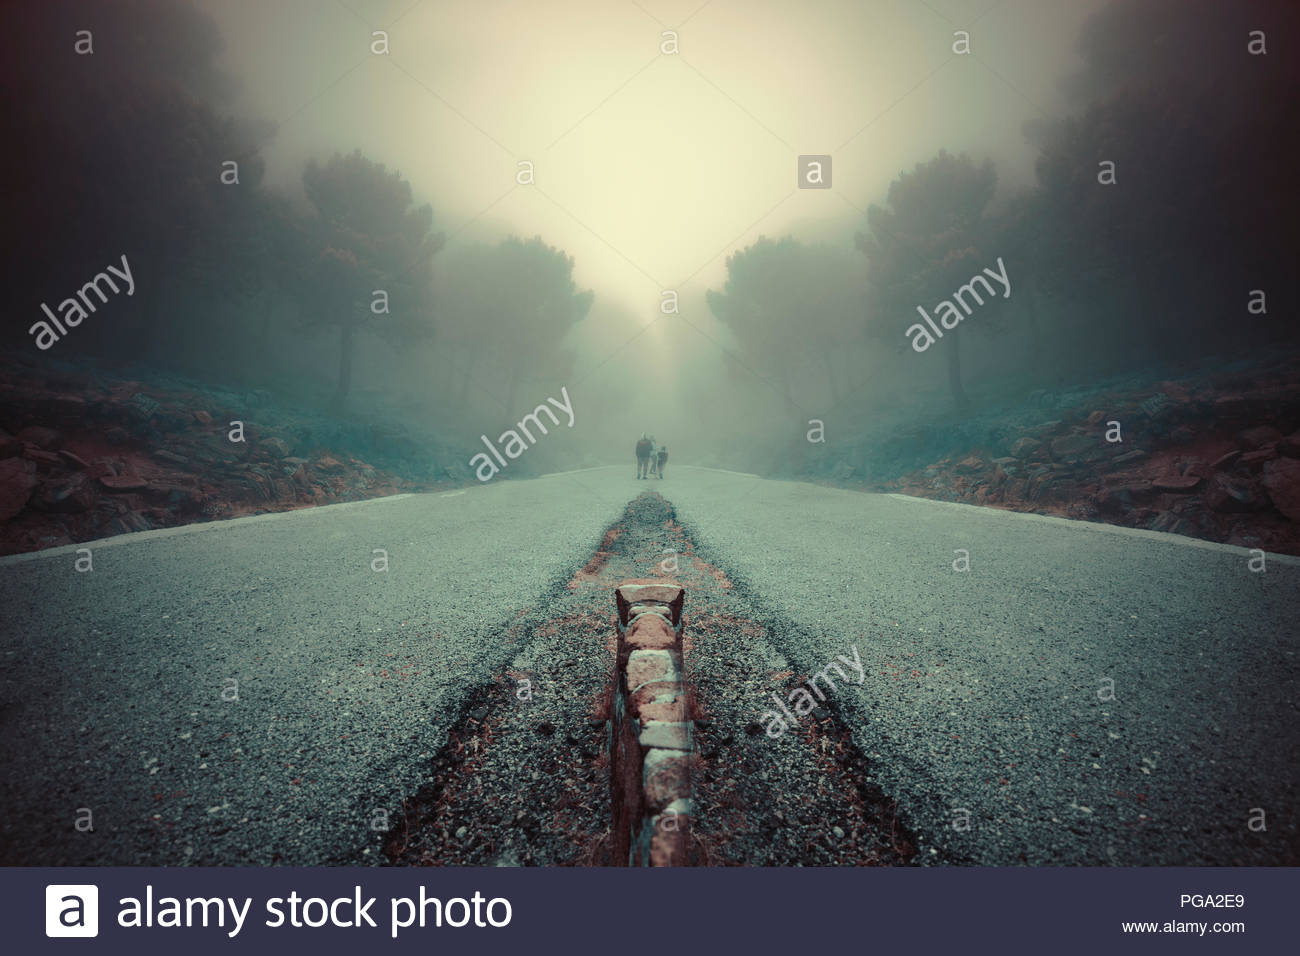 Bilateral Symmetry road in a foggy day - Stock Image